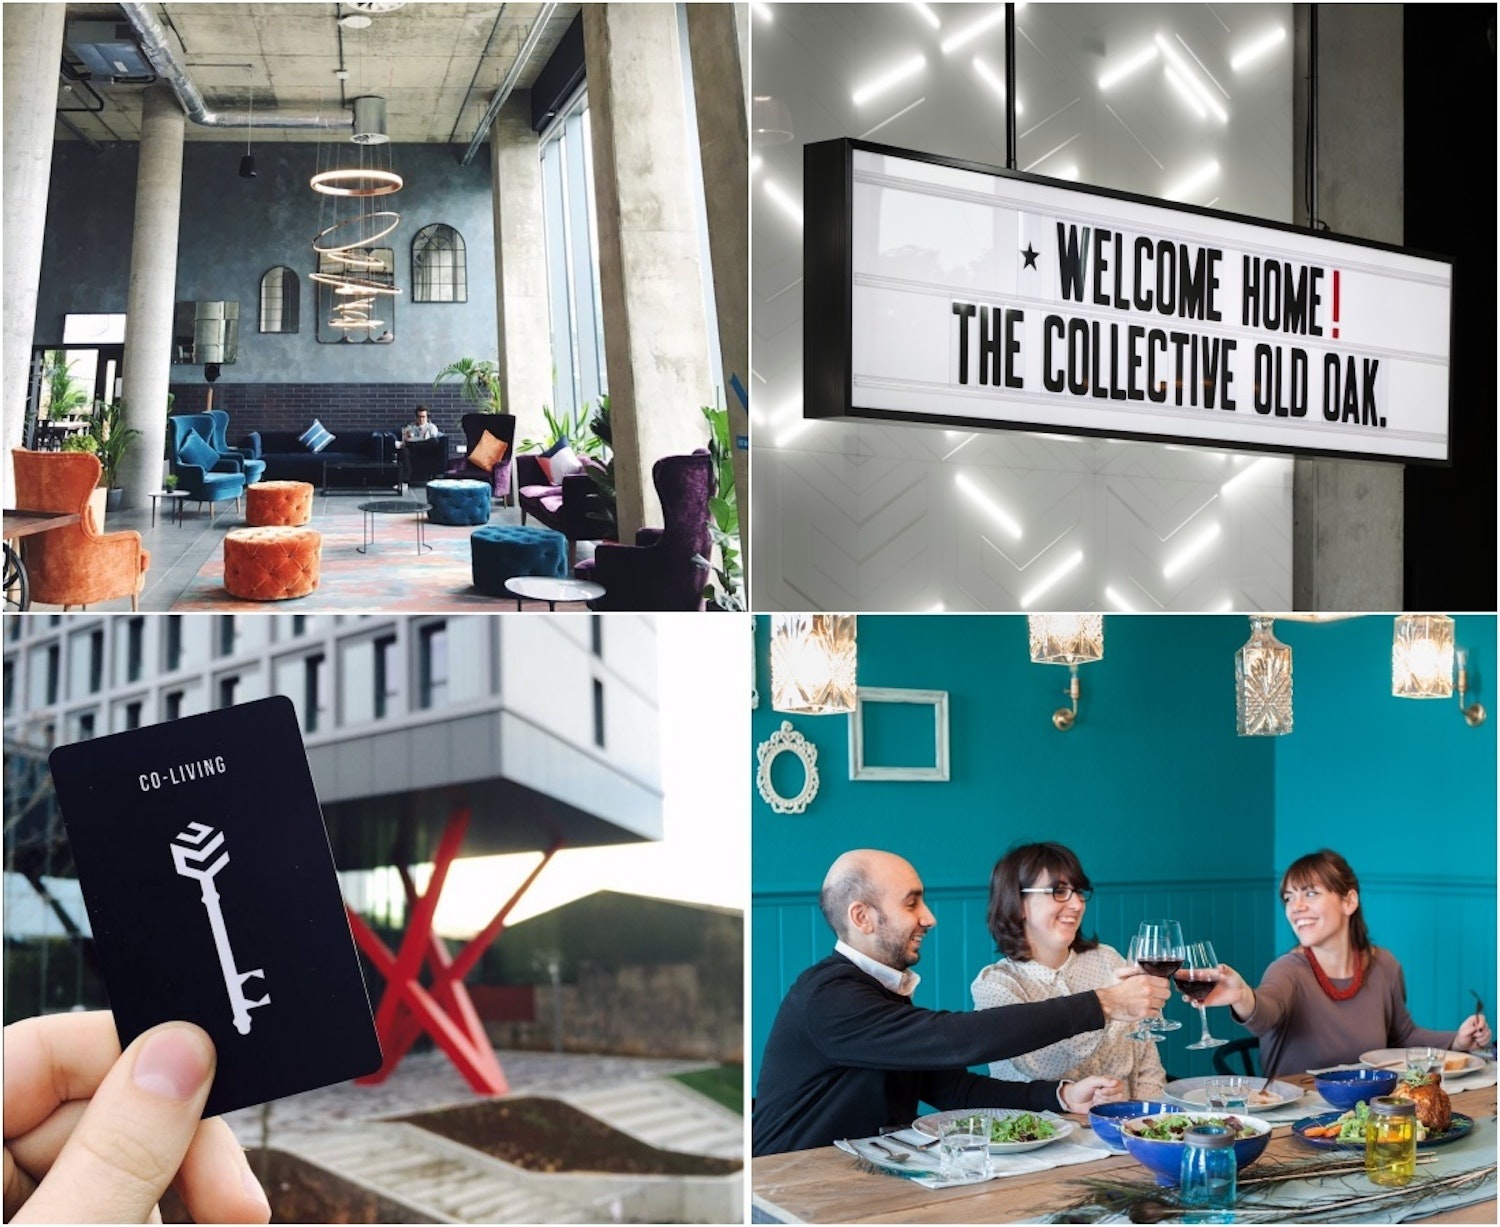 Old Oak FAQs – Everything You Need To Know About Co-Living at The Collective